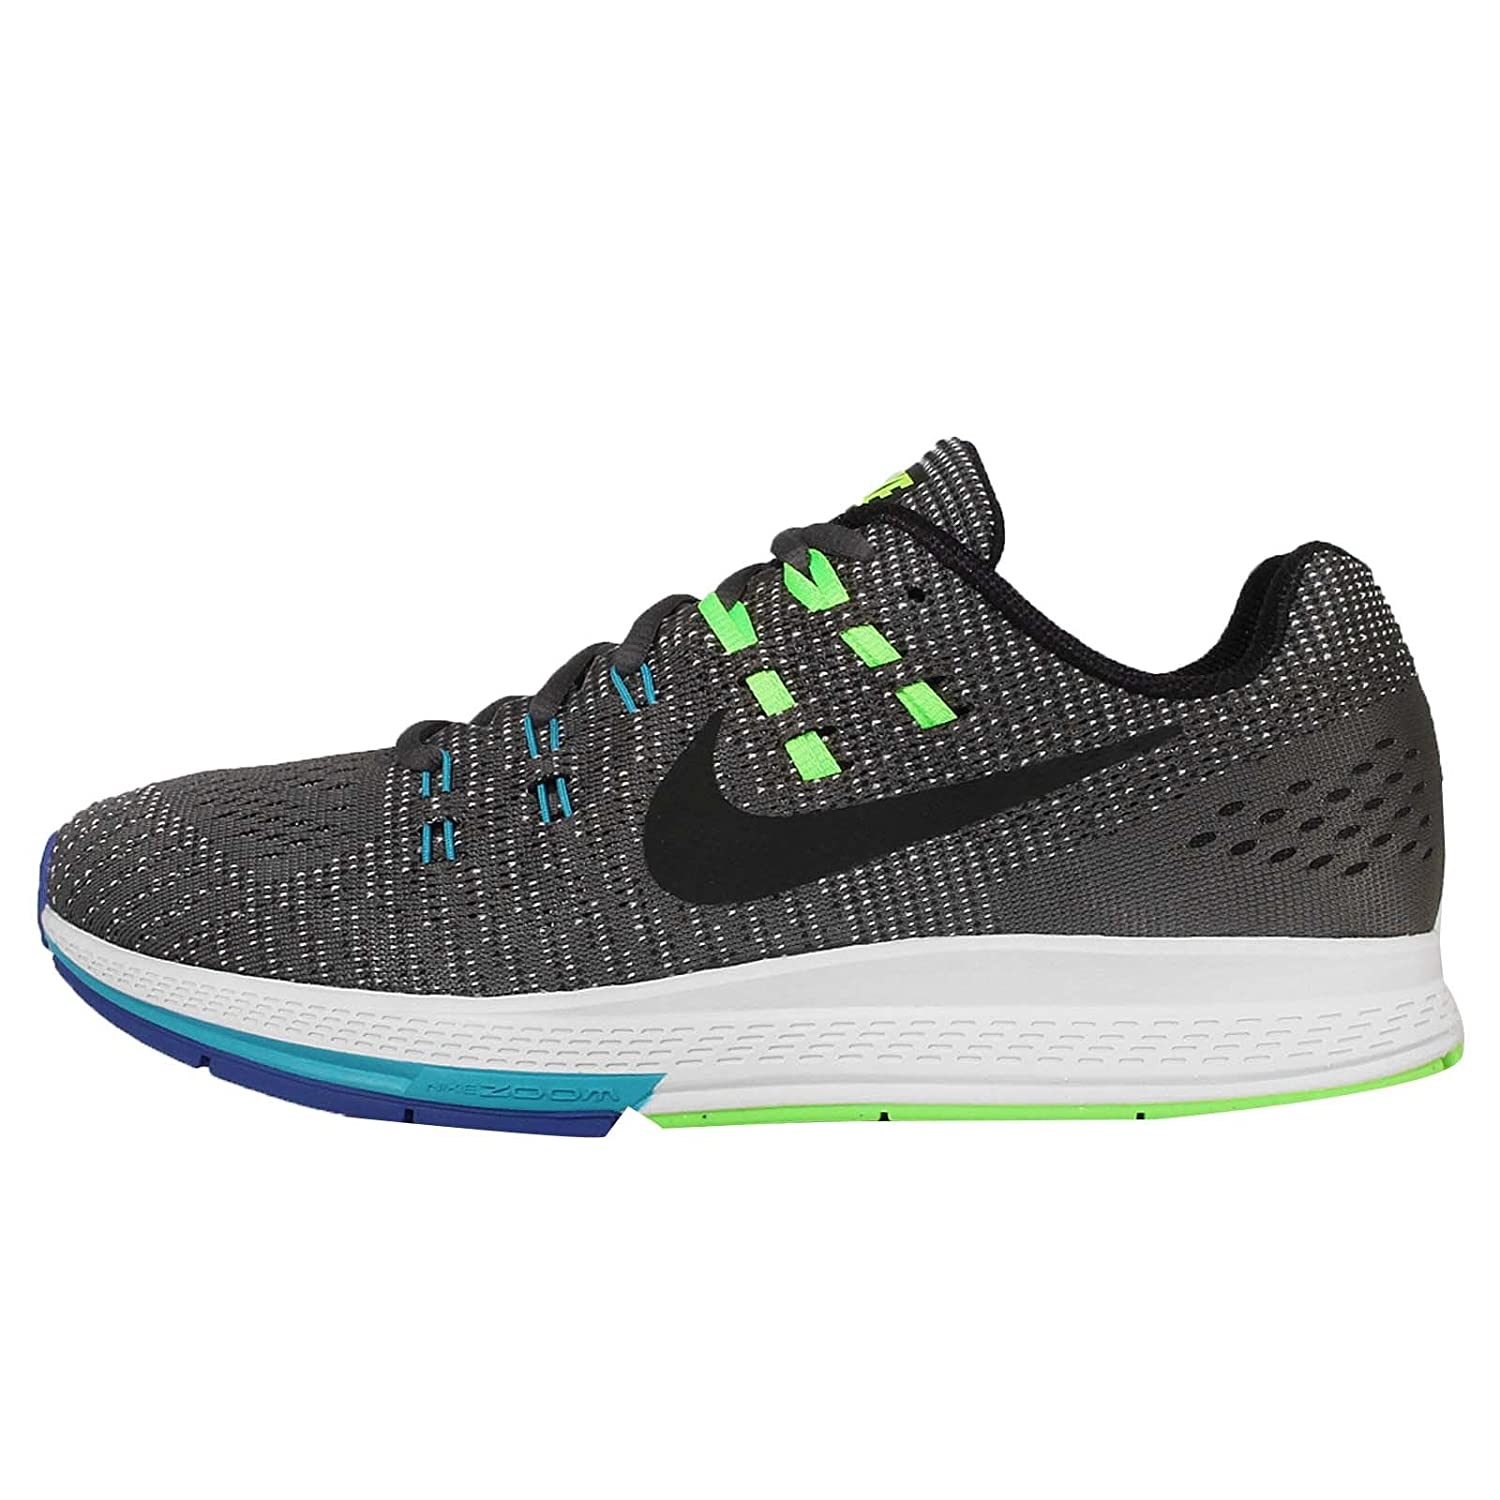 8b14aa37c9e Nike Zoom Structure 19  Buy Online at Low Prices in India - Amazon.in